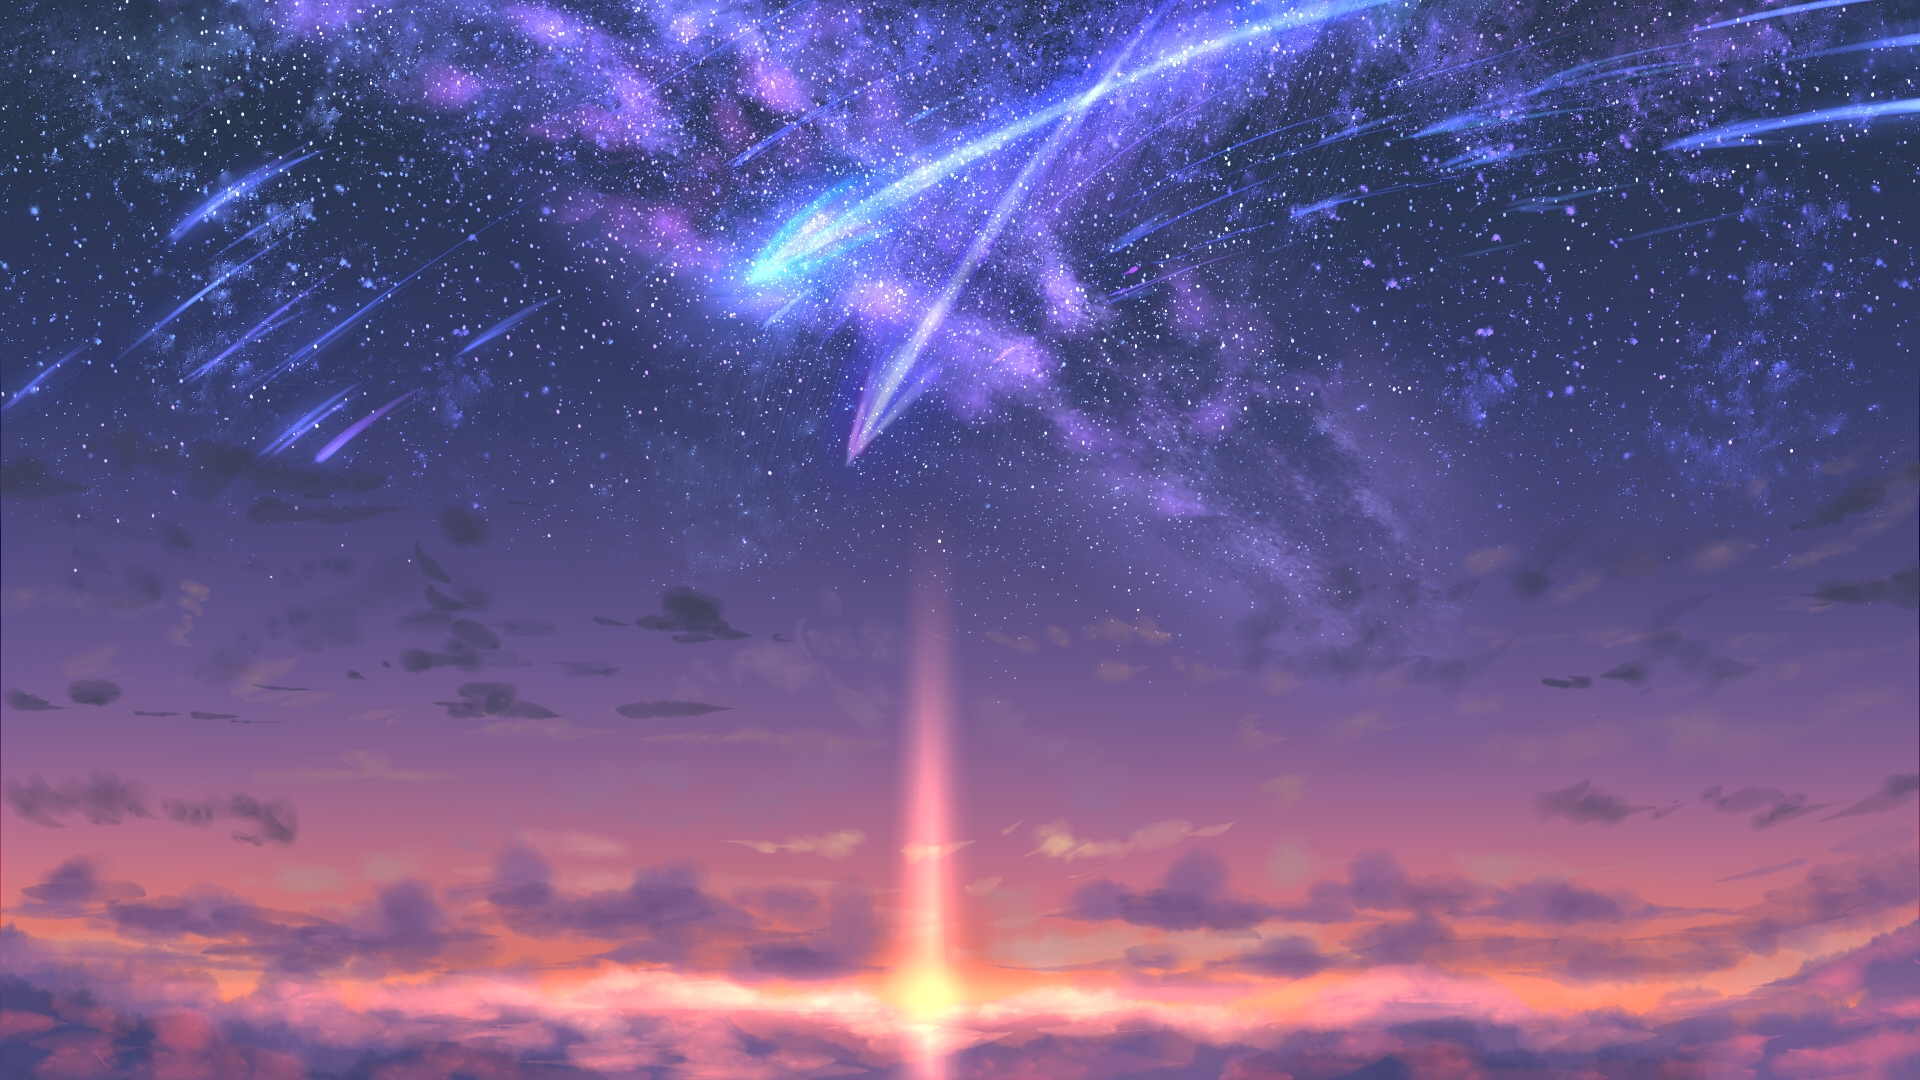 Anime 1920x1080 meteors space sunset clouds stars galaxy artwork sky Kimi no Na Wa